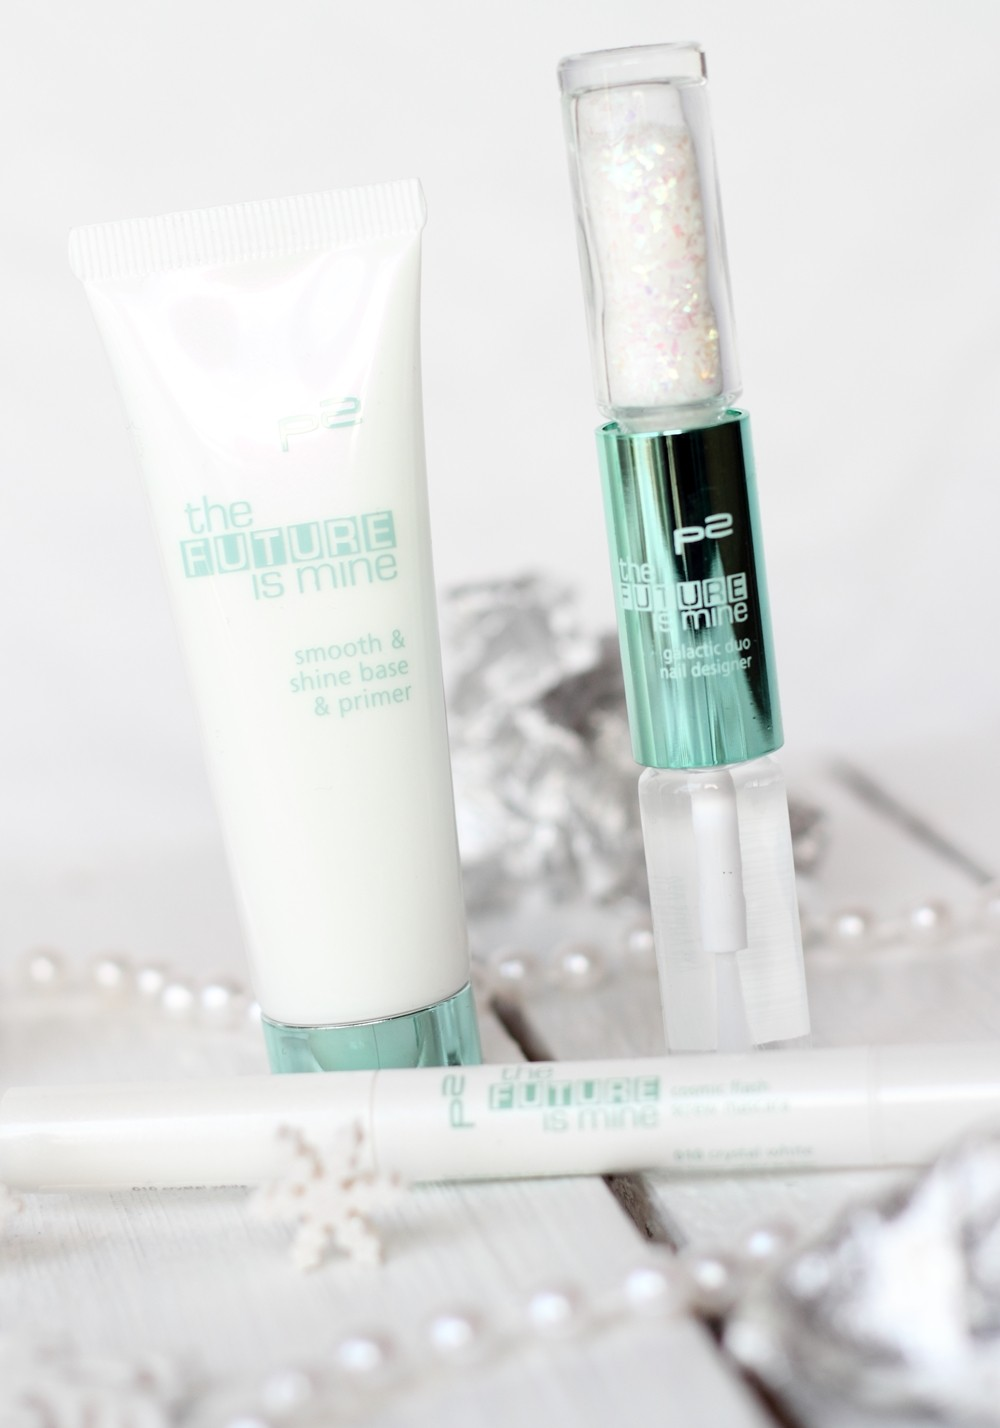 P2 Limited Edition The future is mine Primer Eye Brightener Cosmic Flash Screw Mascara